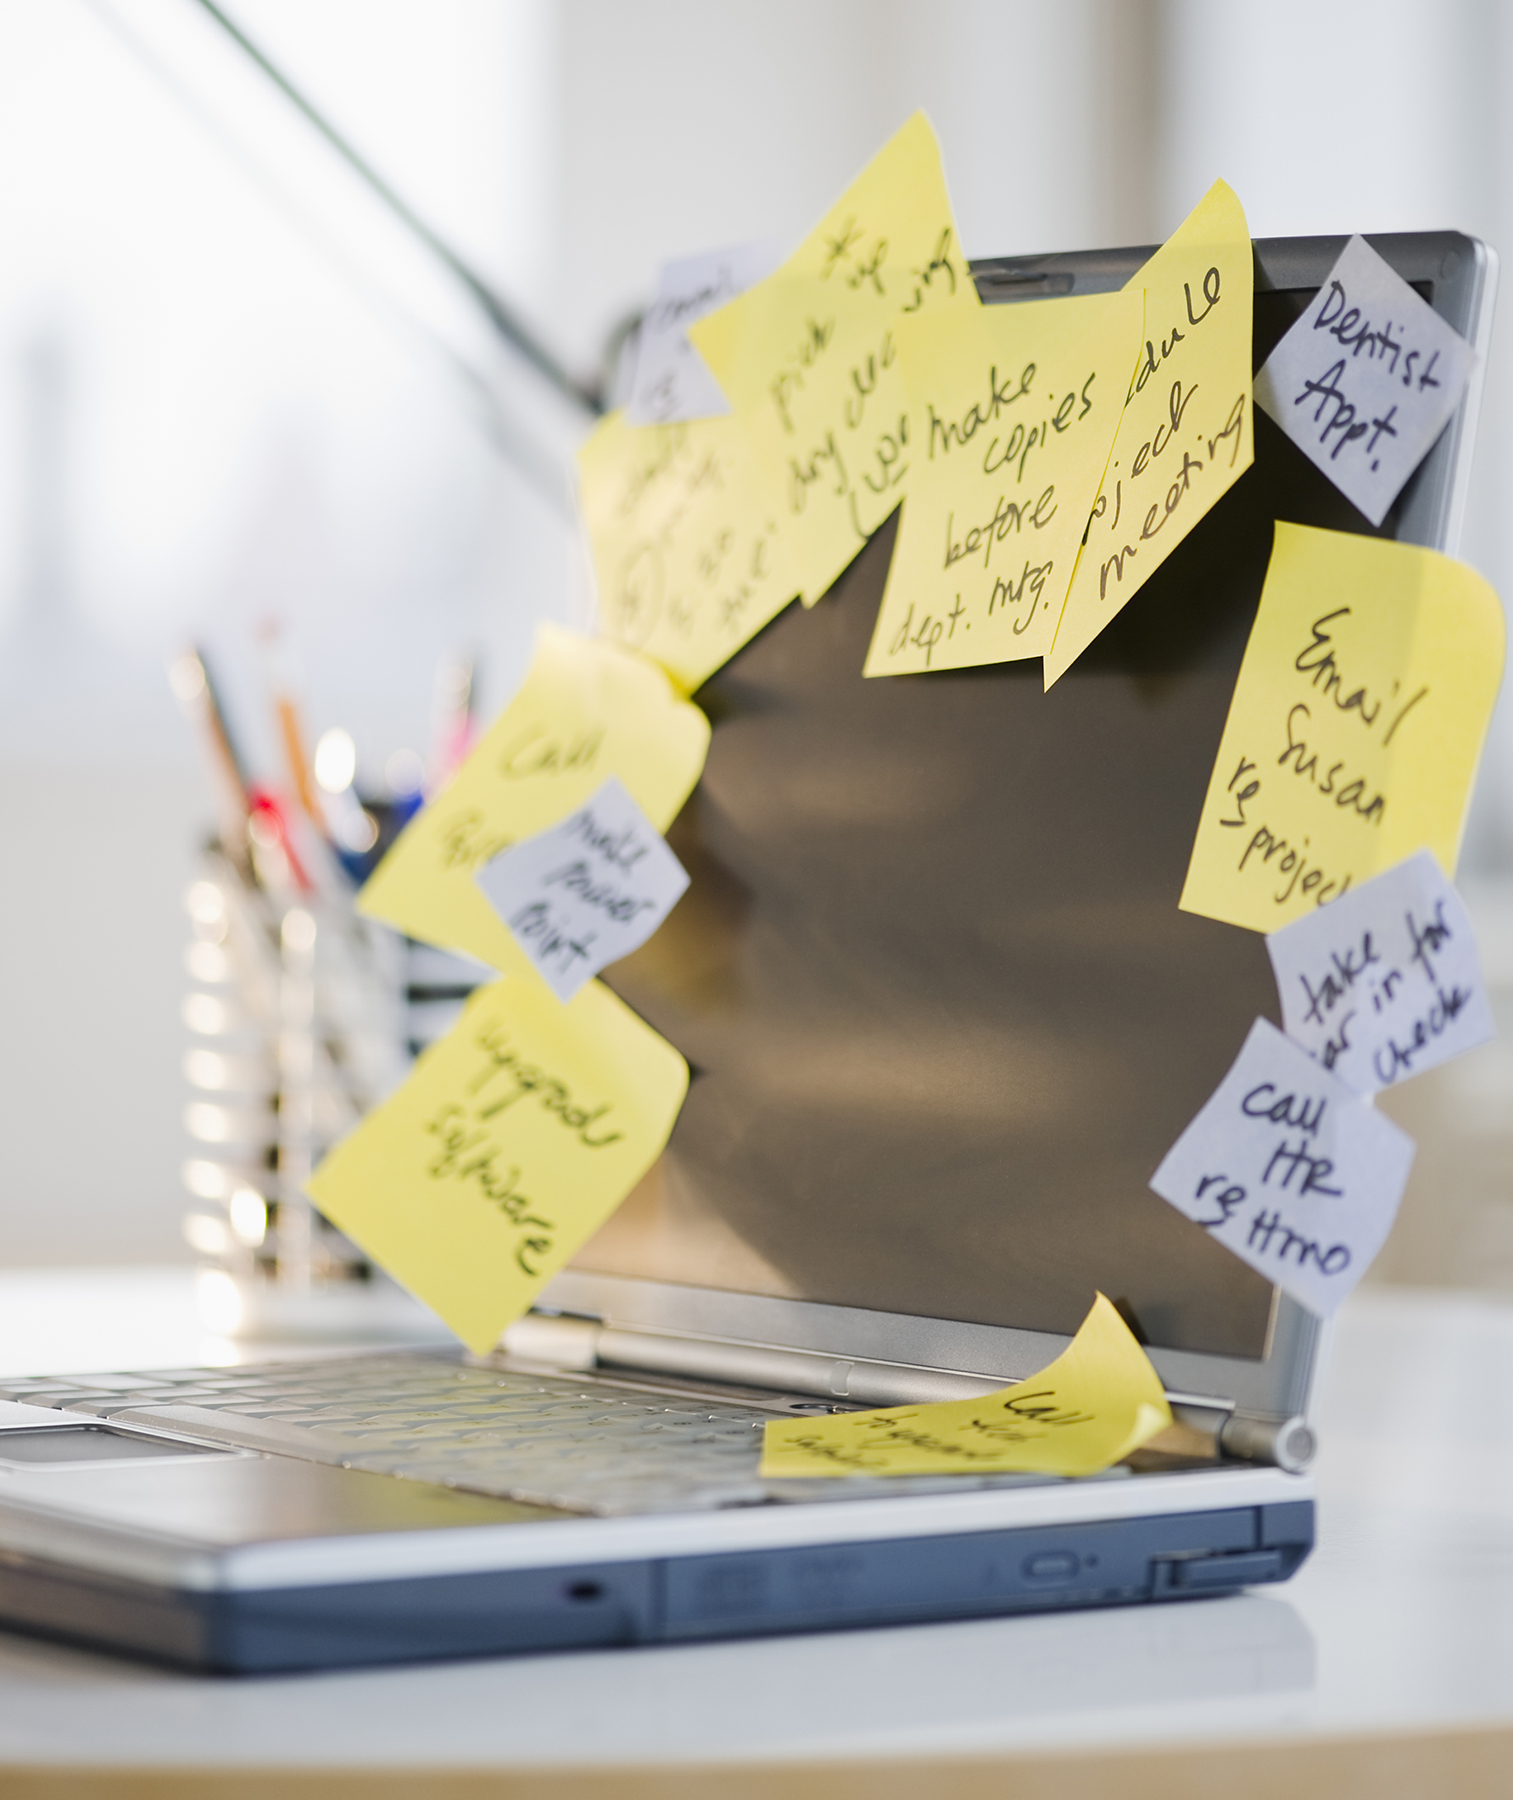 To-do lists on sticky notes